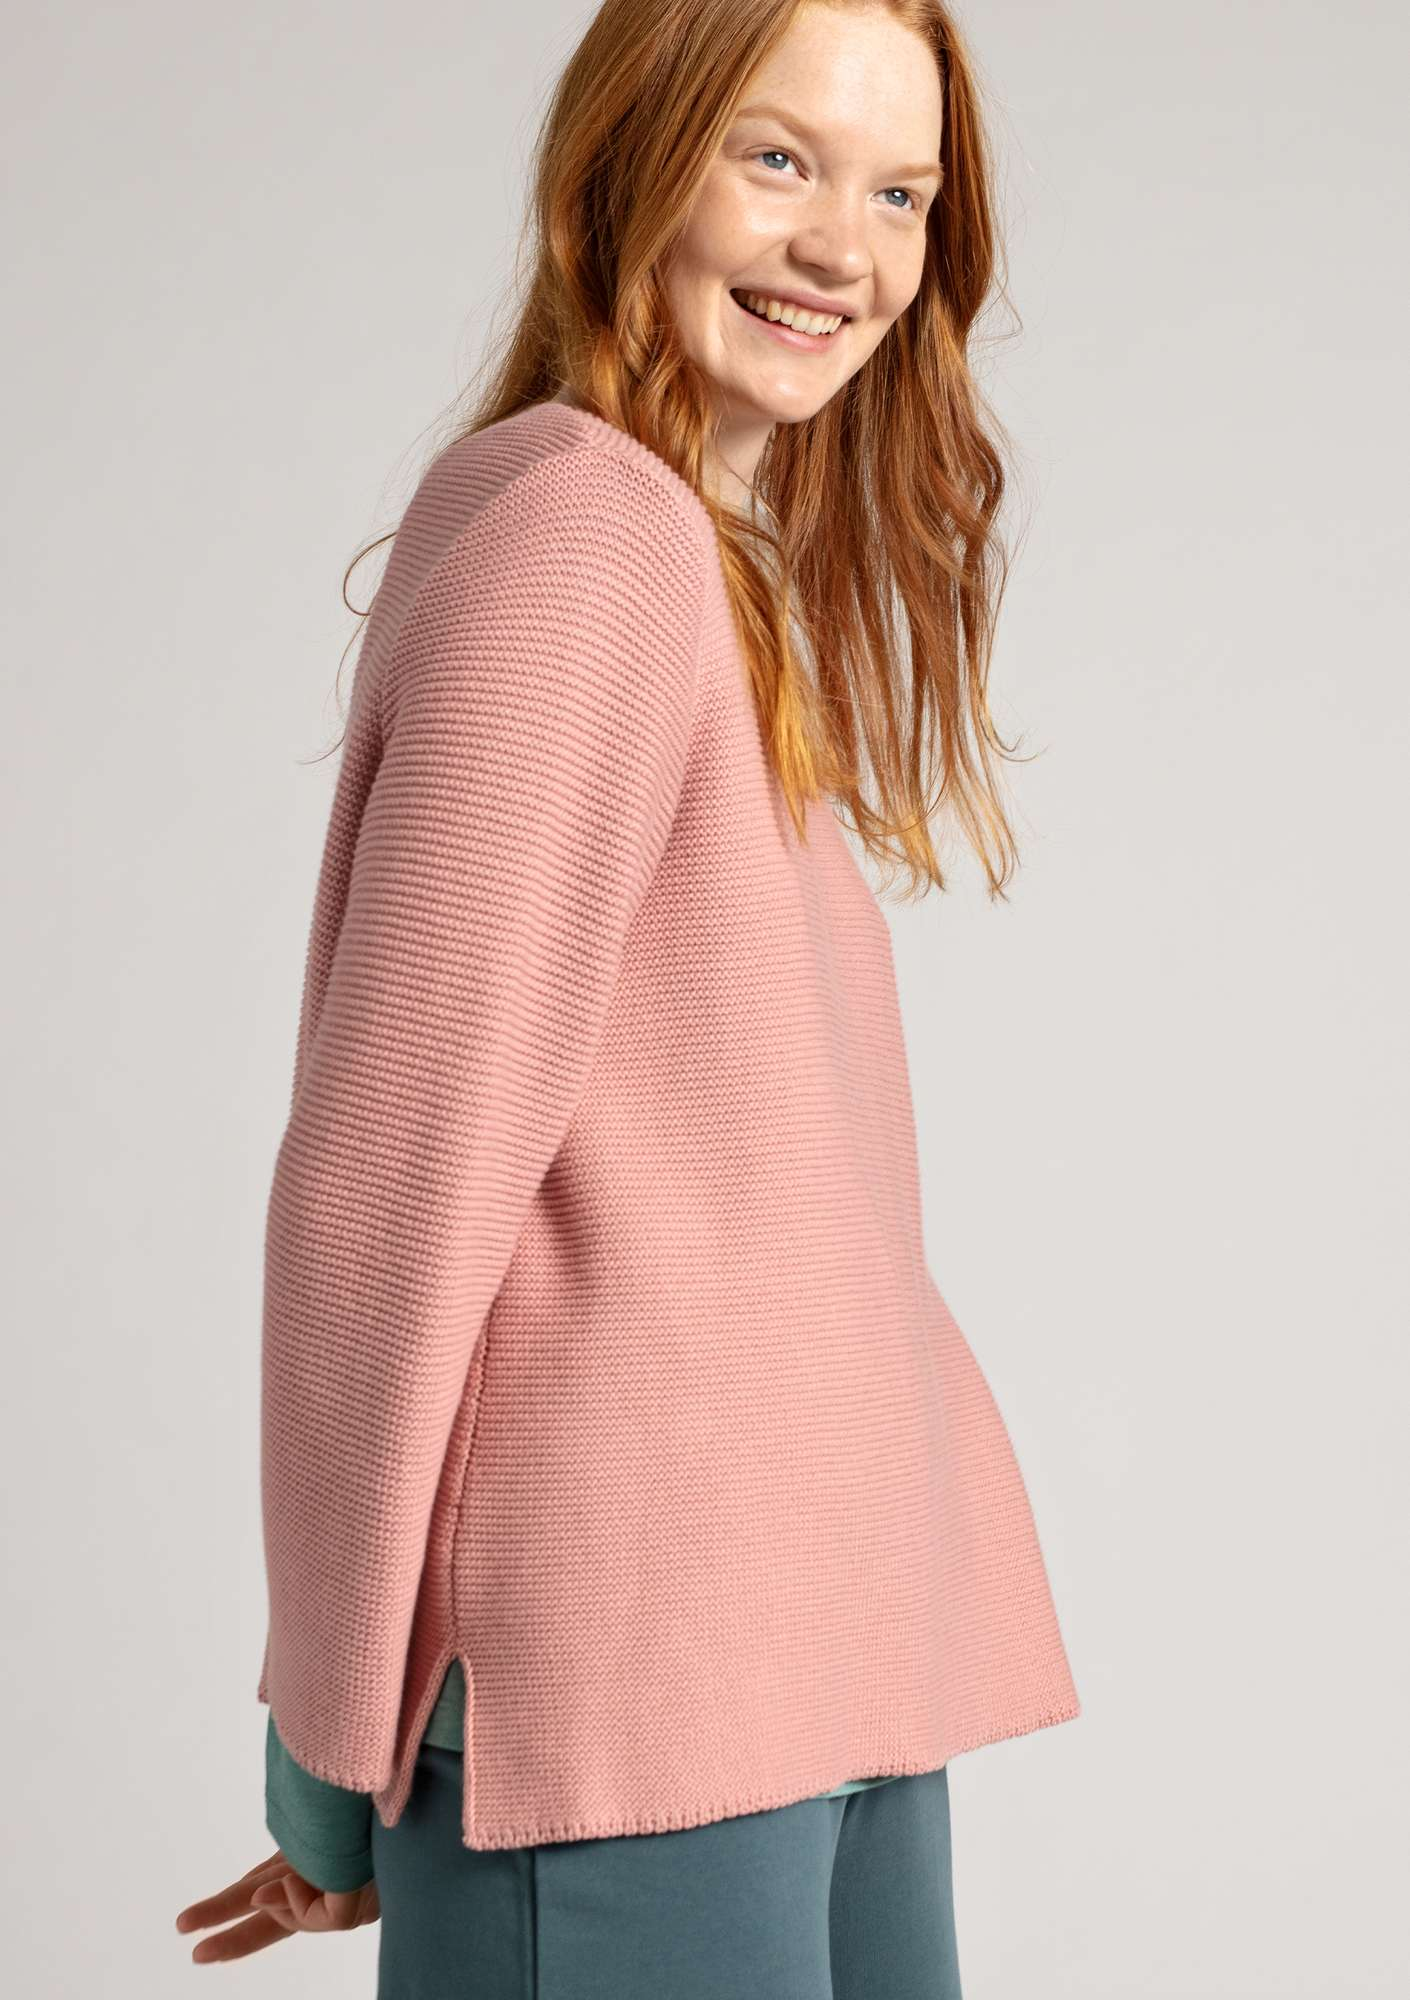 Sweater knit in garter stitch in organic cotton dusky pink